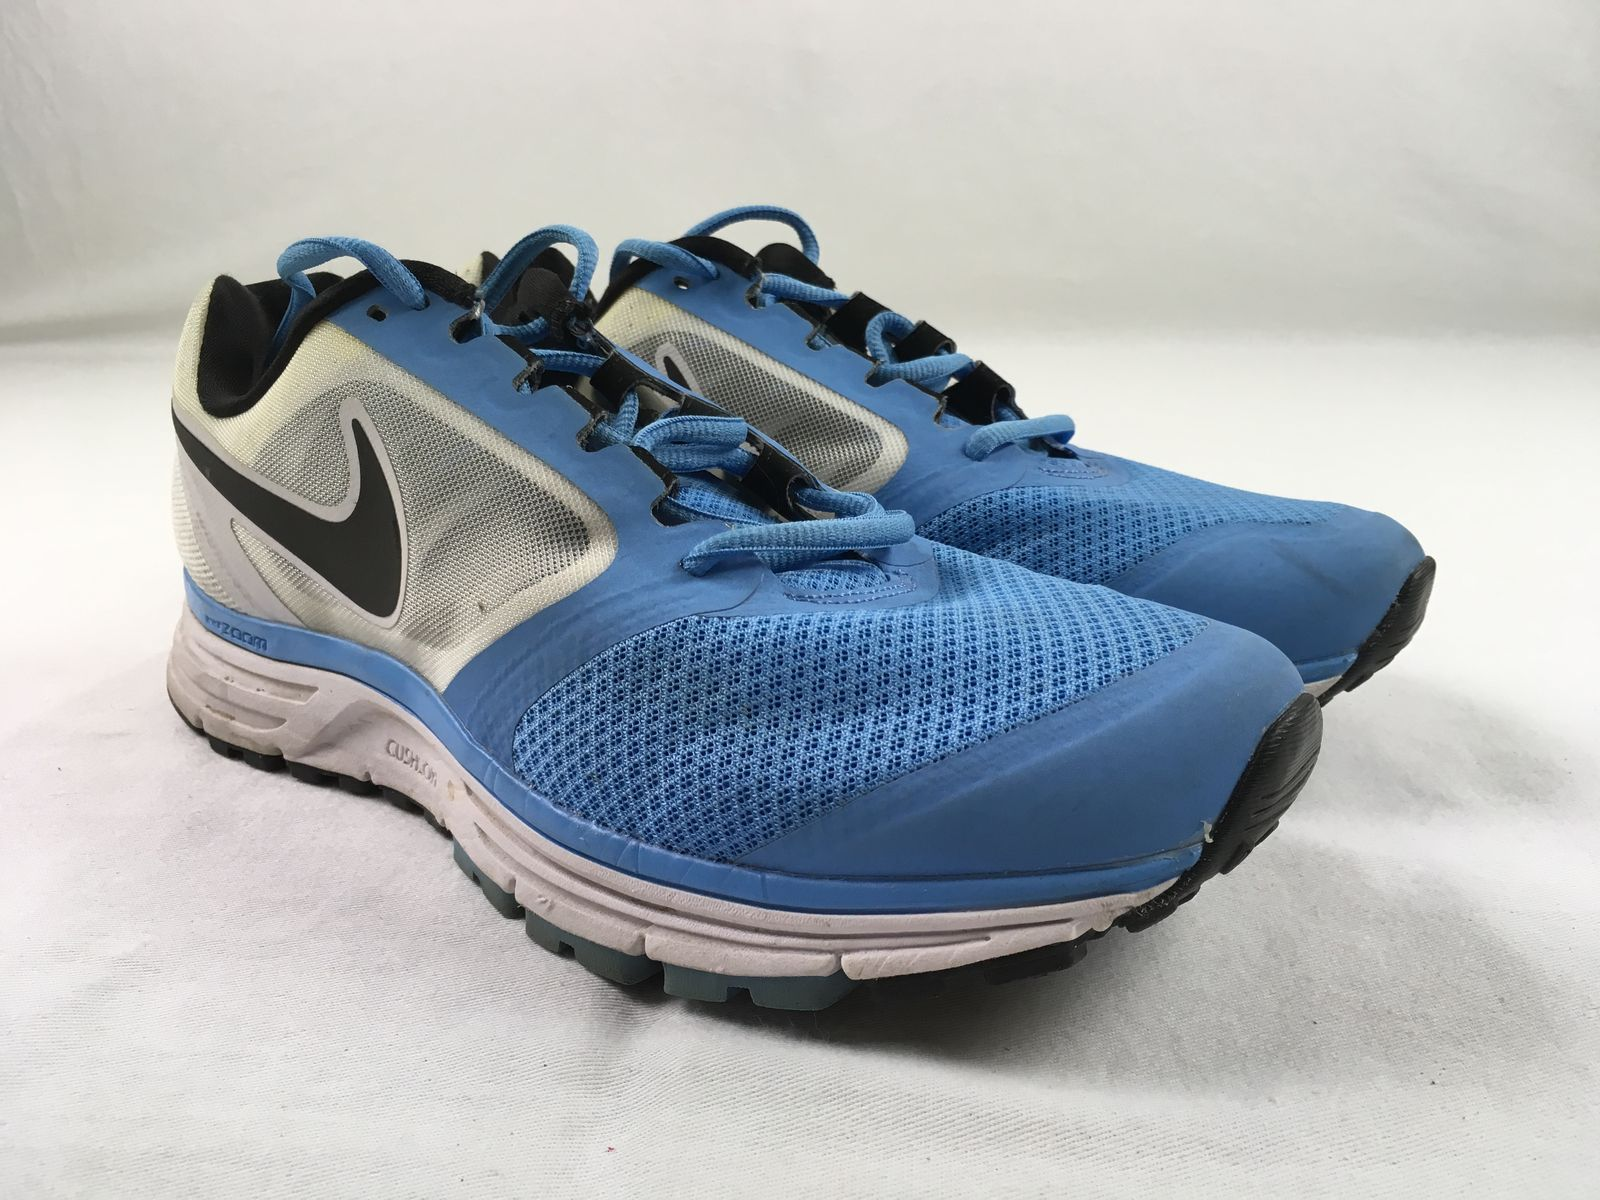 621b140e7cc6c8 Details about Nike Vomero 8 - Blue White Running